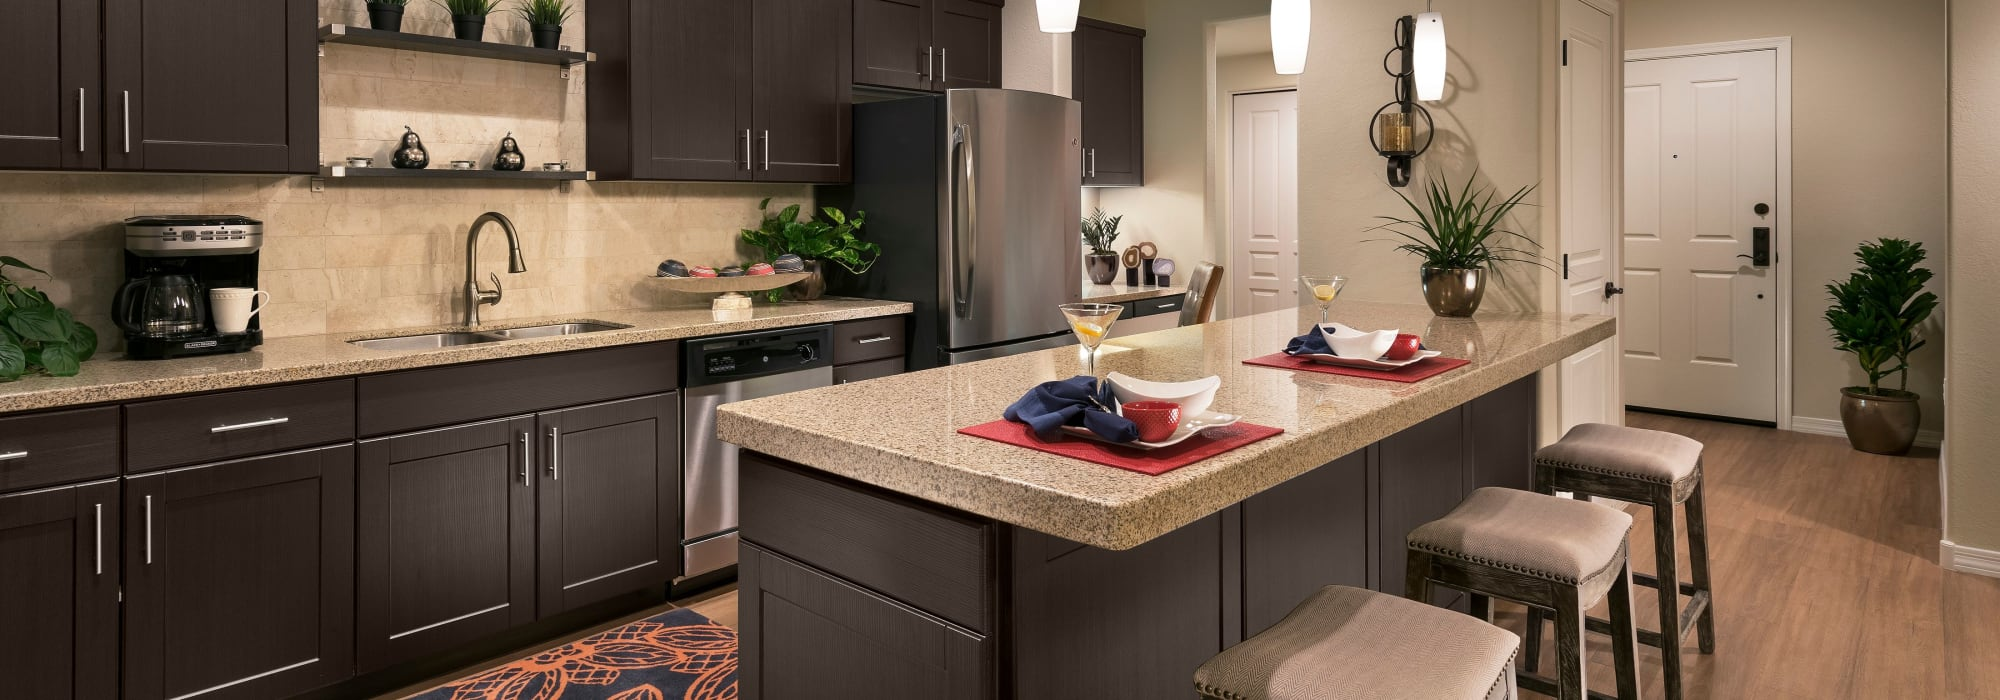 Gourmet kitchen with dark wood cabinetry in model home at San Milan in Phoenix, Arizona